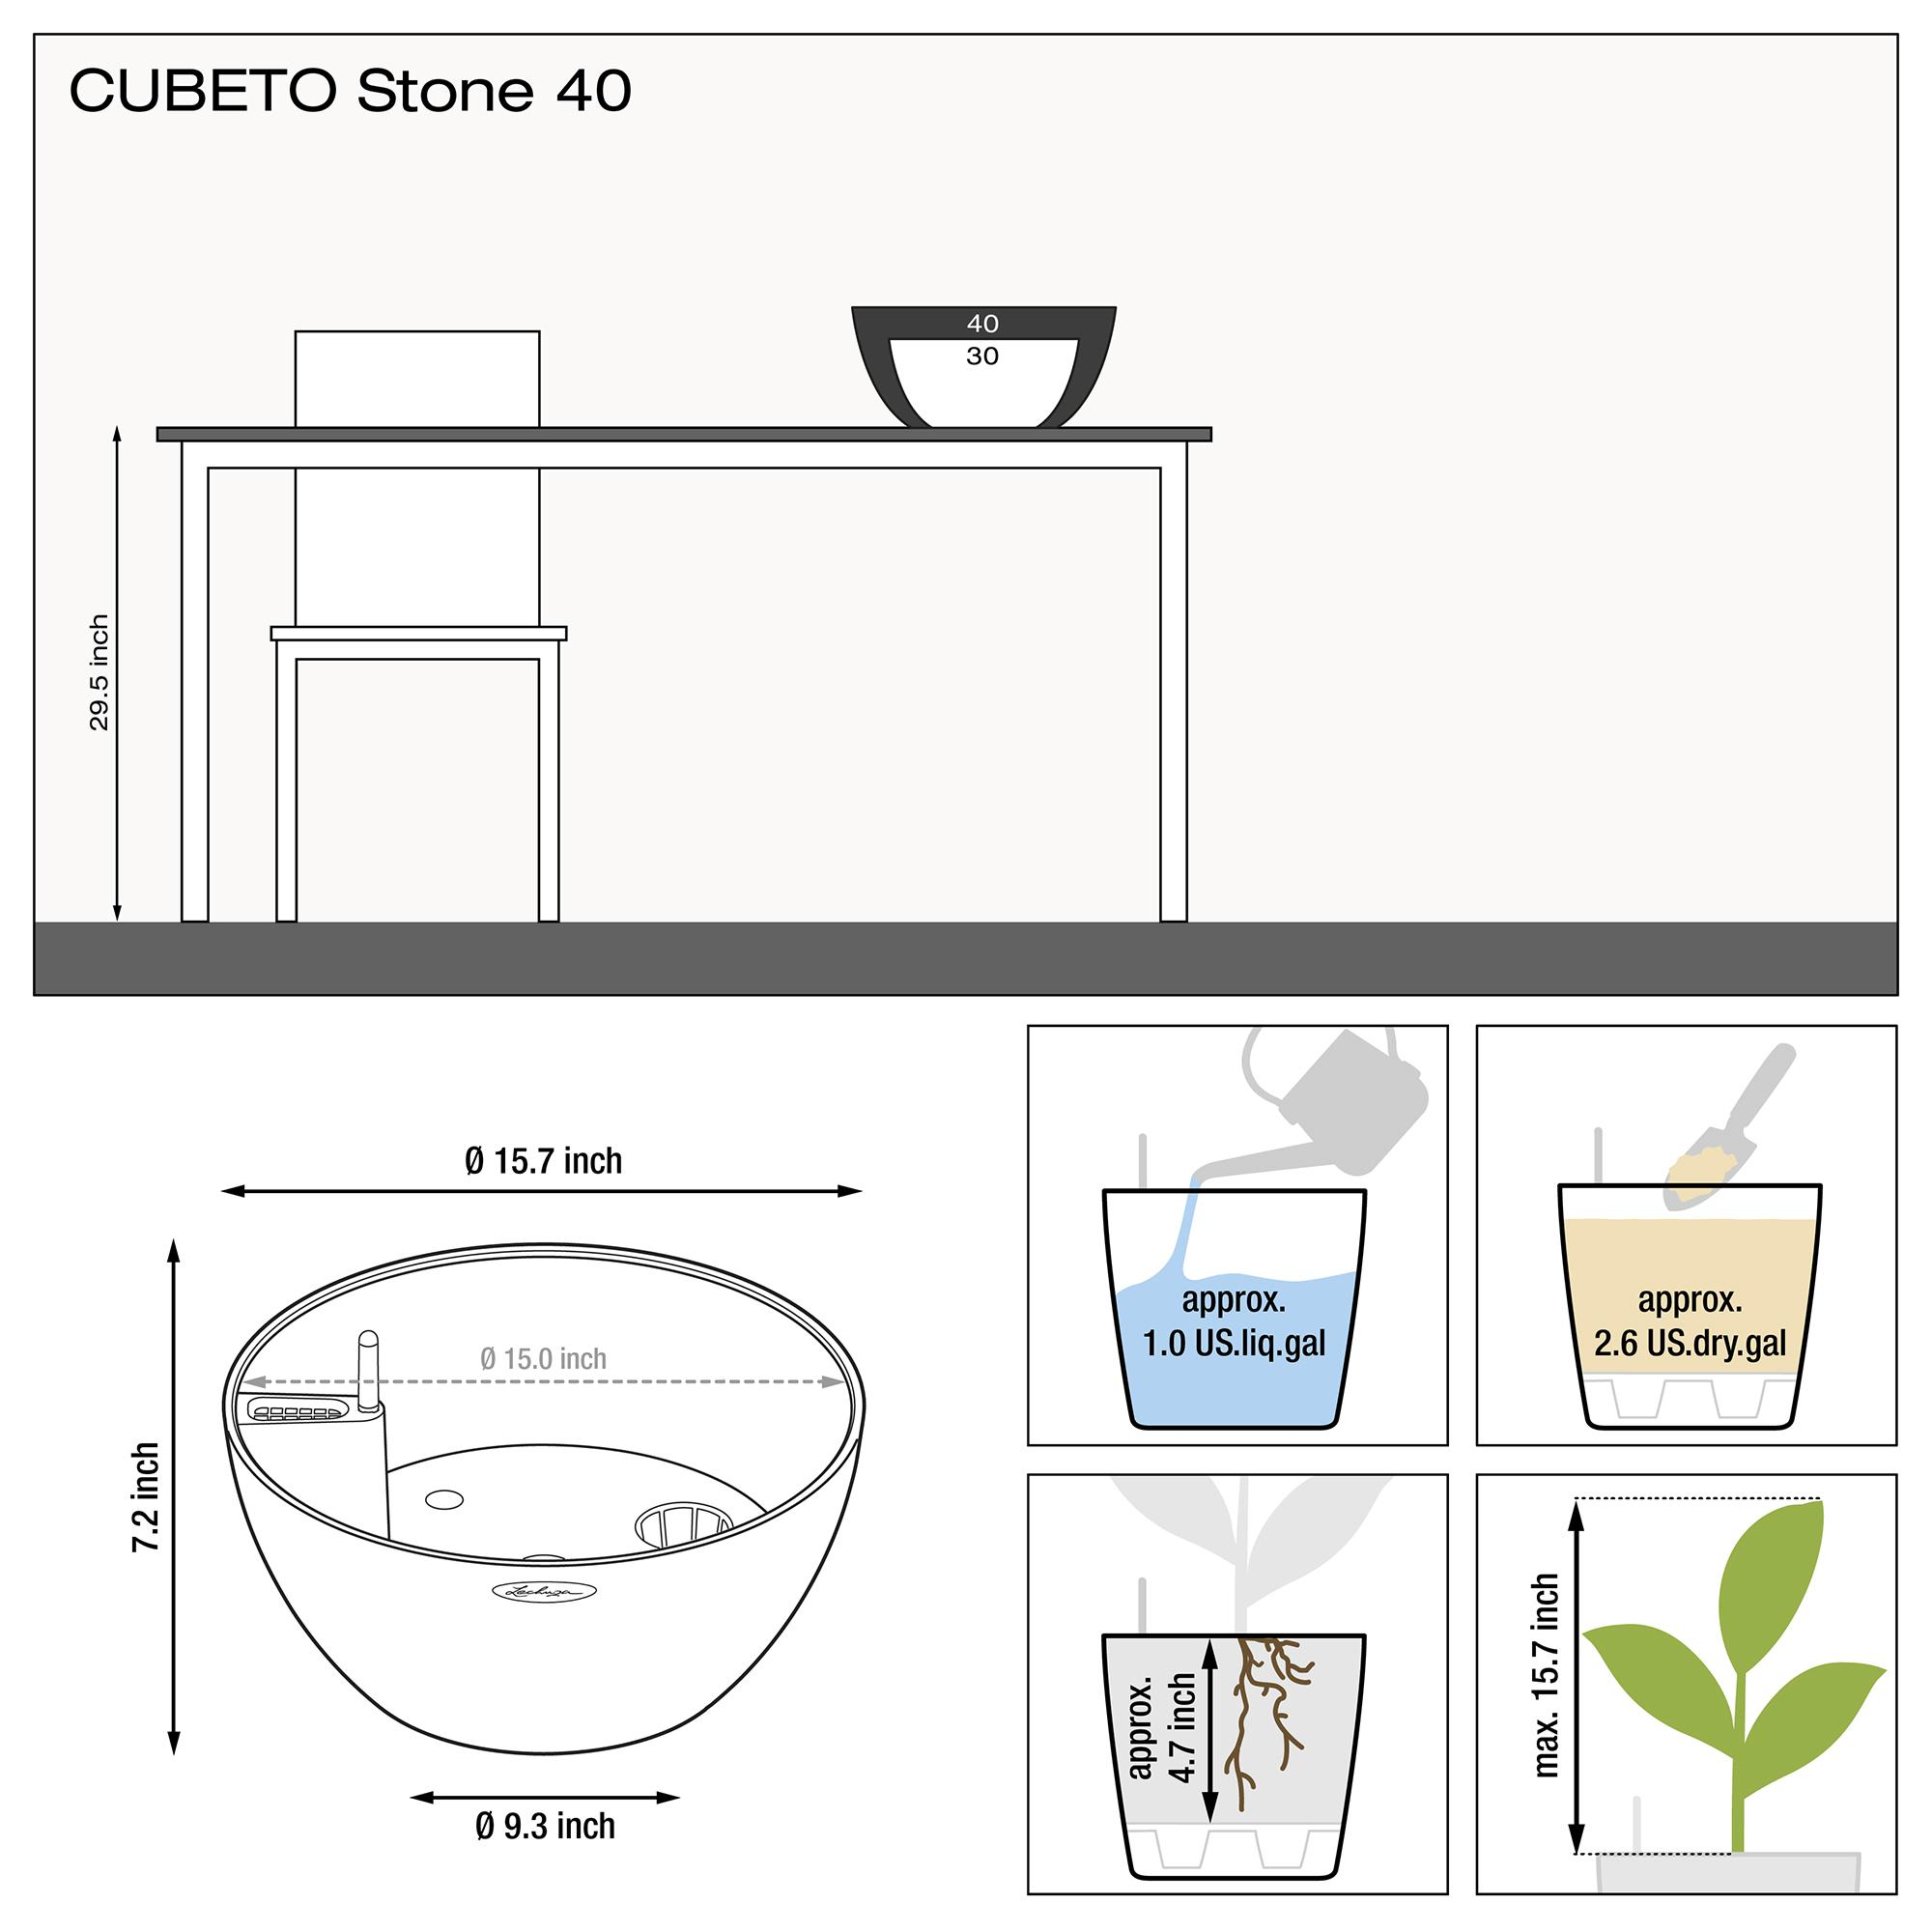 le_cubeto-stone40_product_addi_nz_us